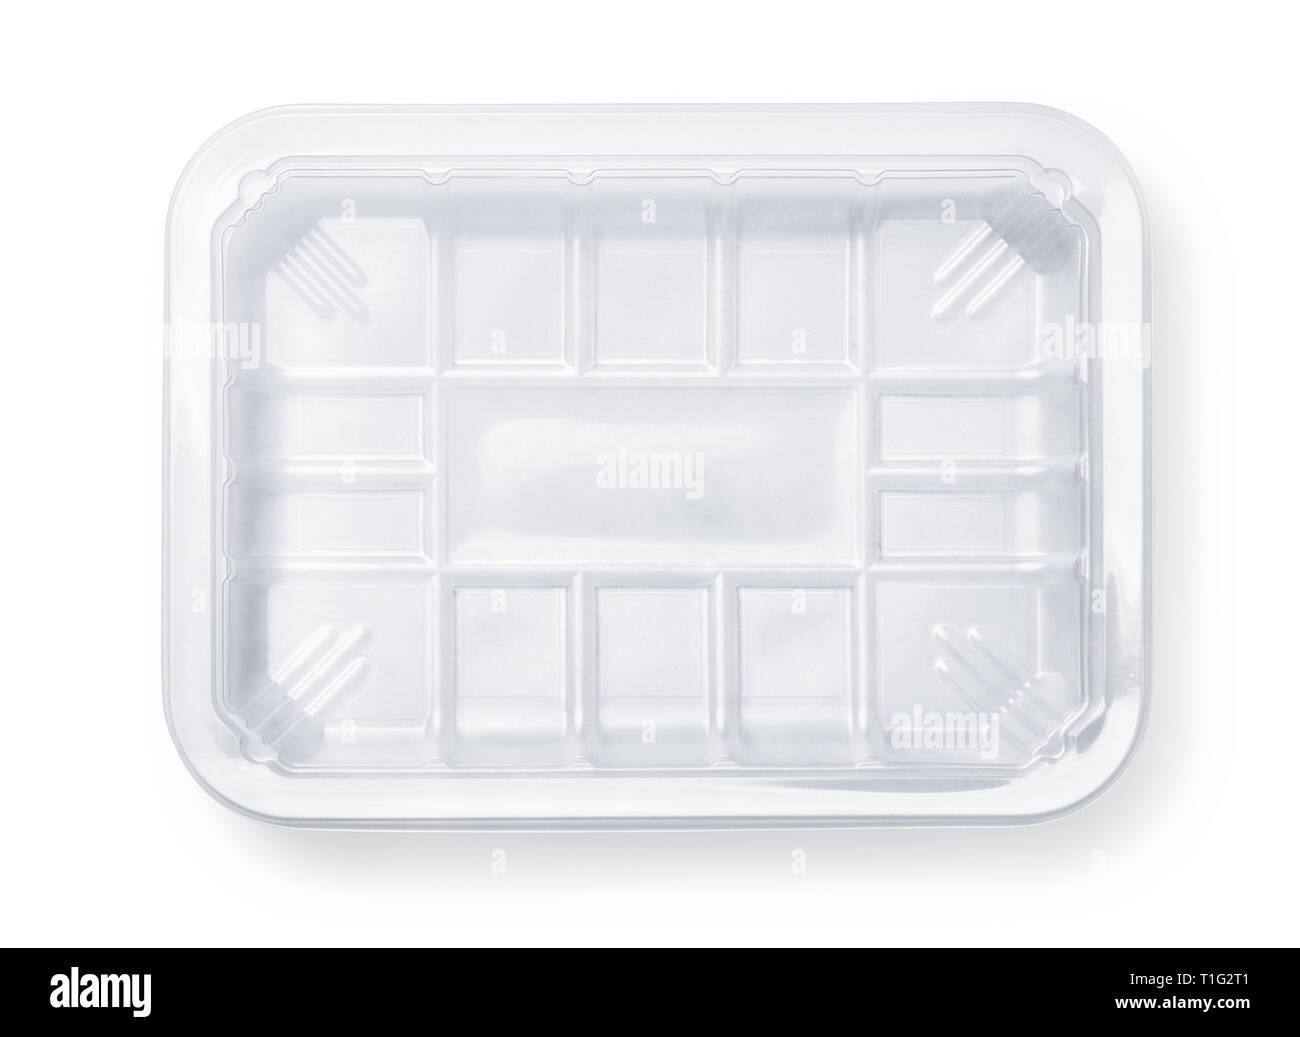 Top view of transparent plastic food packing tray isolated on white - Stock Image